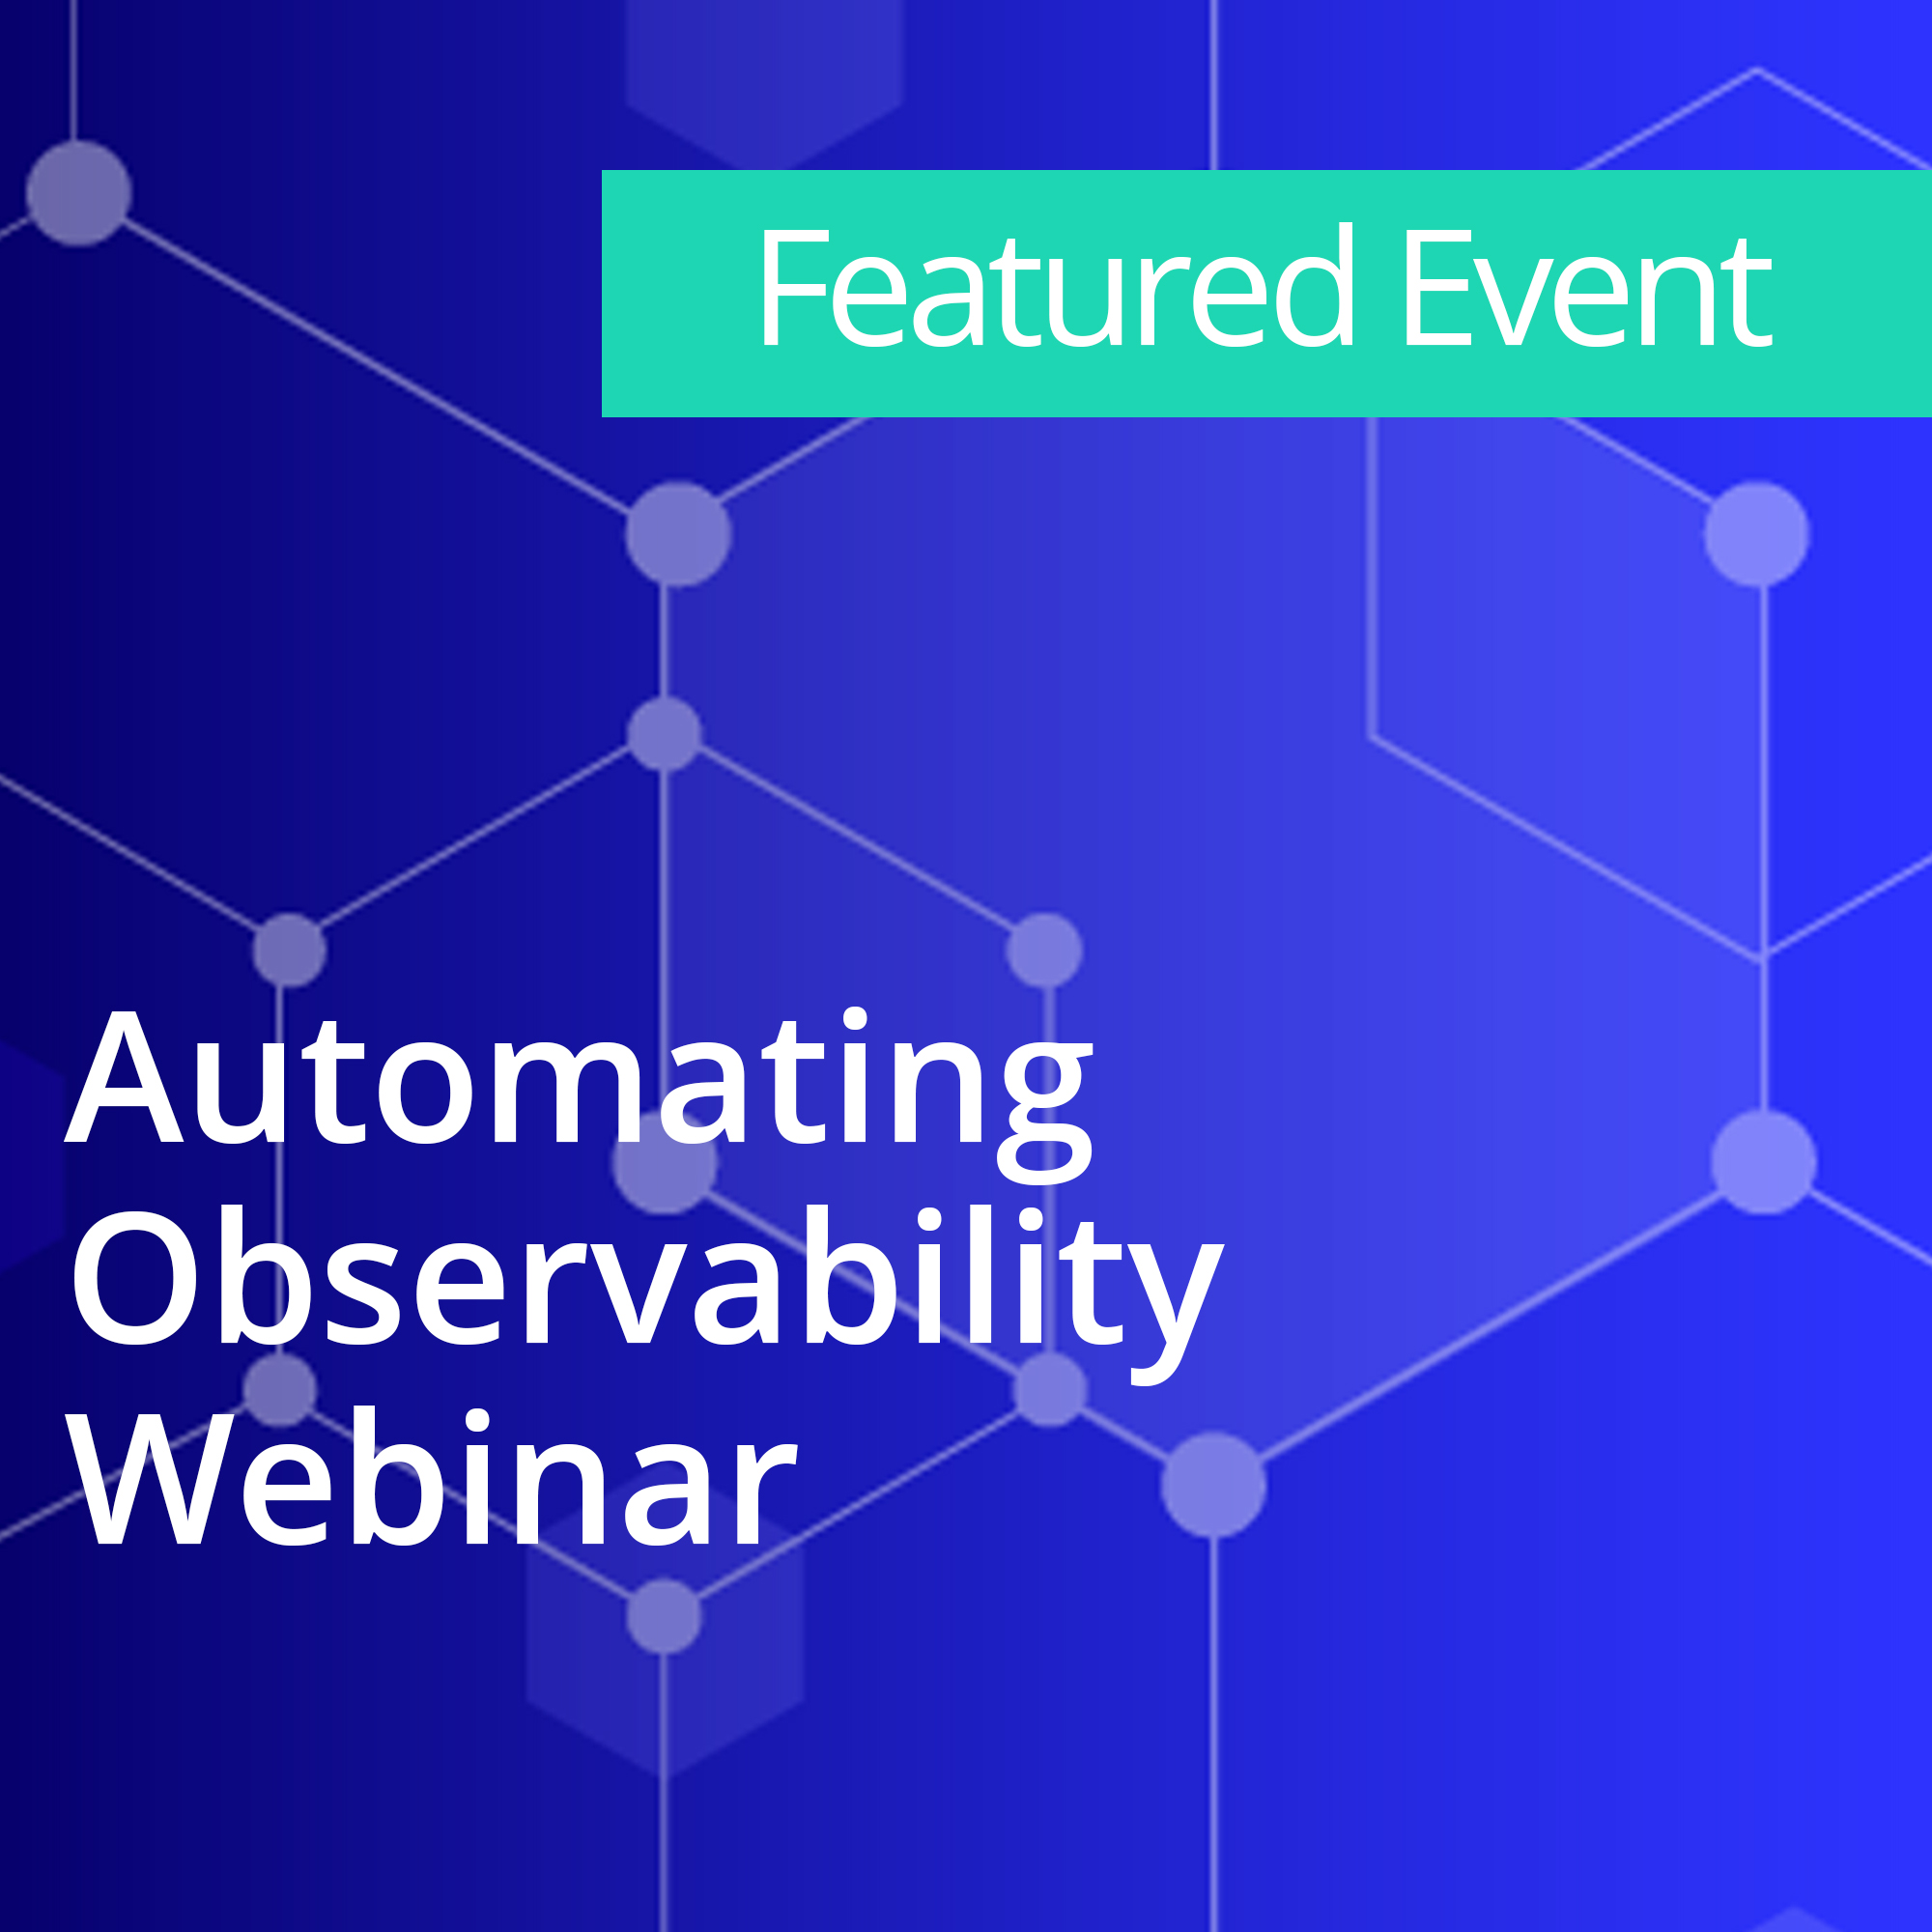 Automating Observability